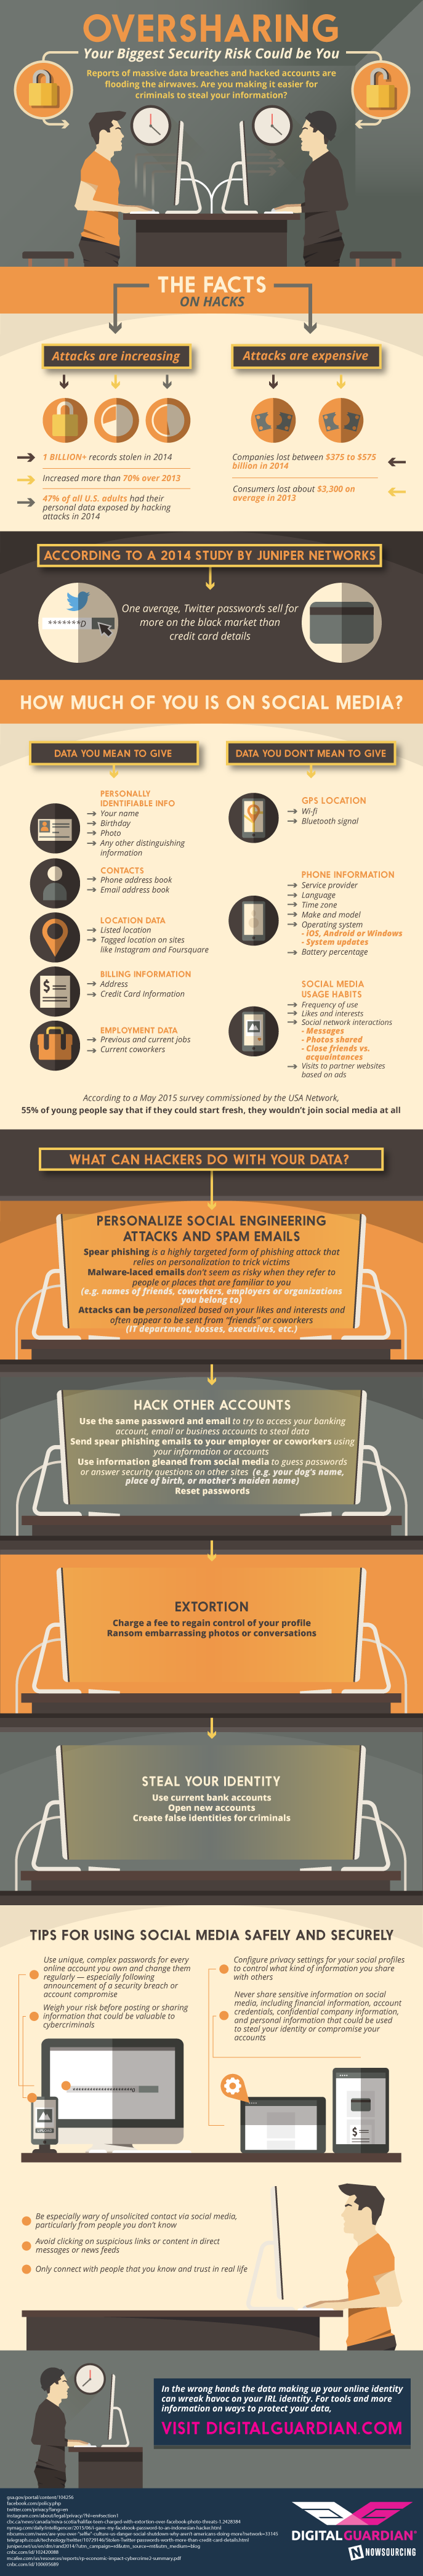 Social Media Oversharing Security Risks Infographic